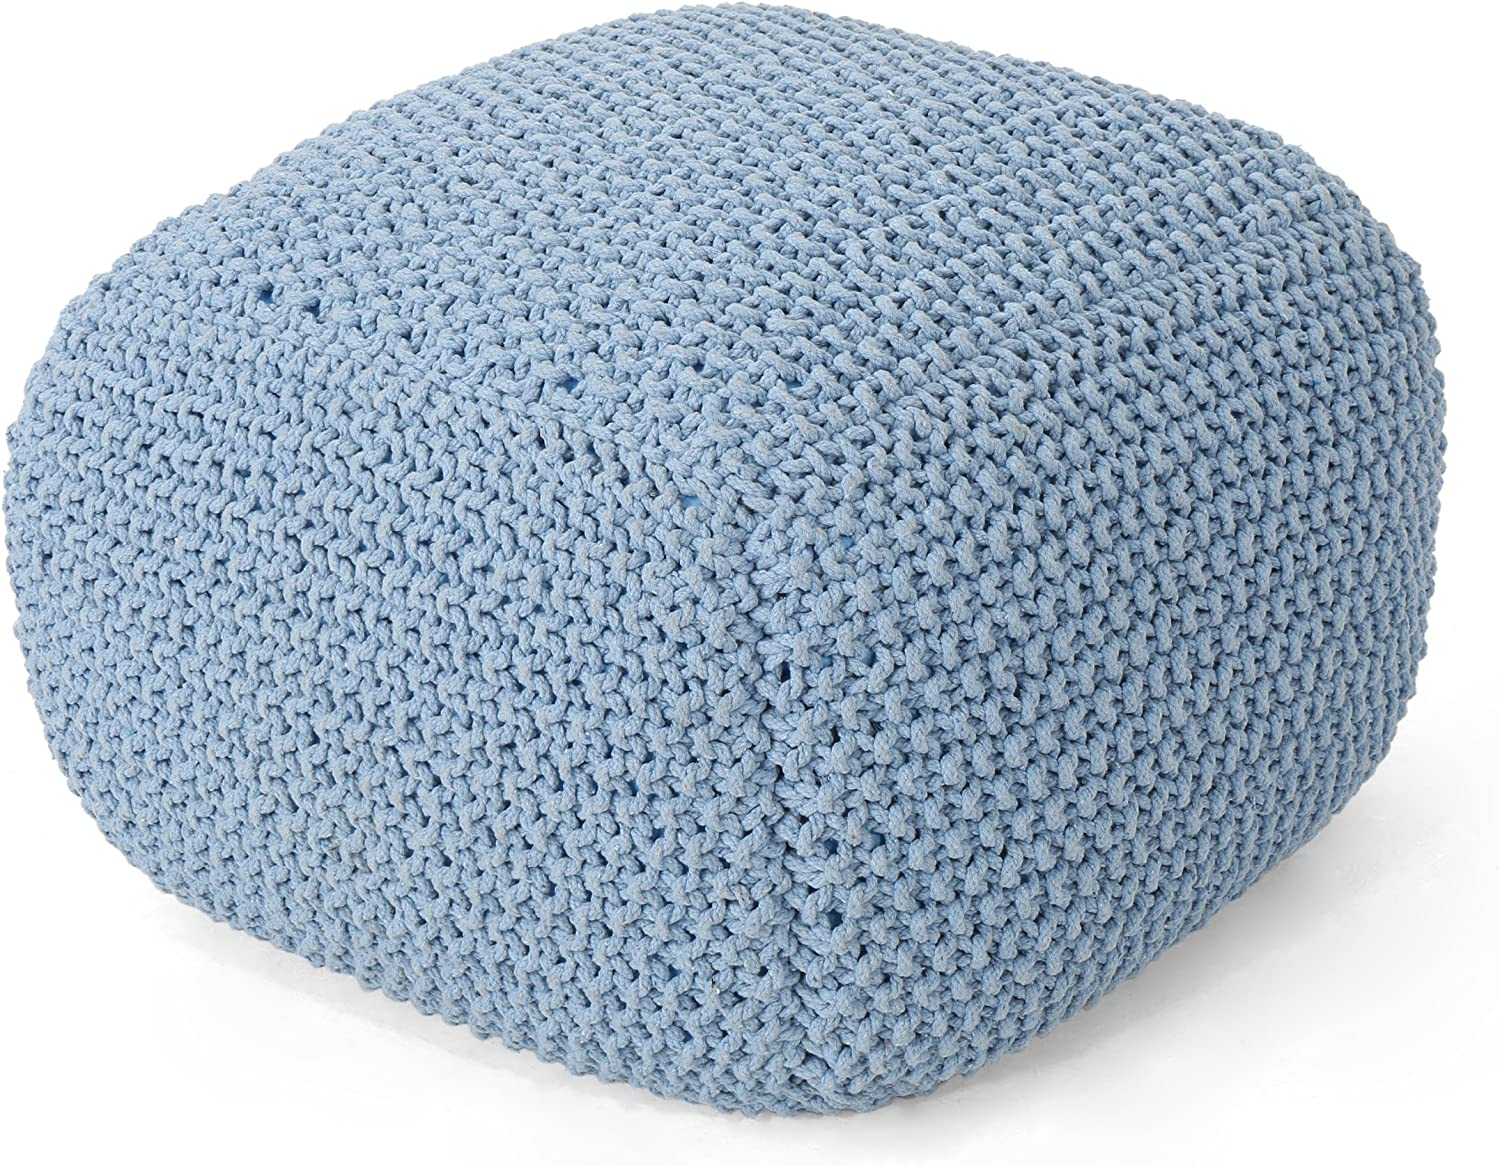 Christopher Knight Home Lucy Knitted Cotton Teal Square Pouf 5 ☆ very popular Max 77% OFF